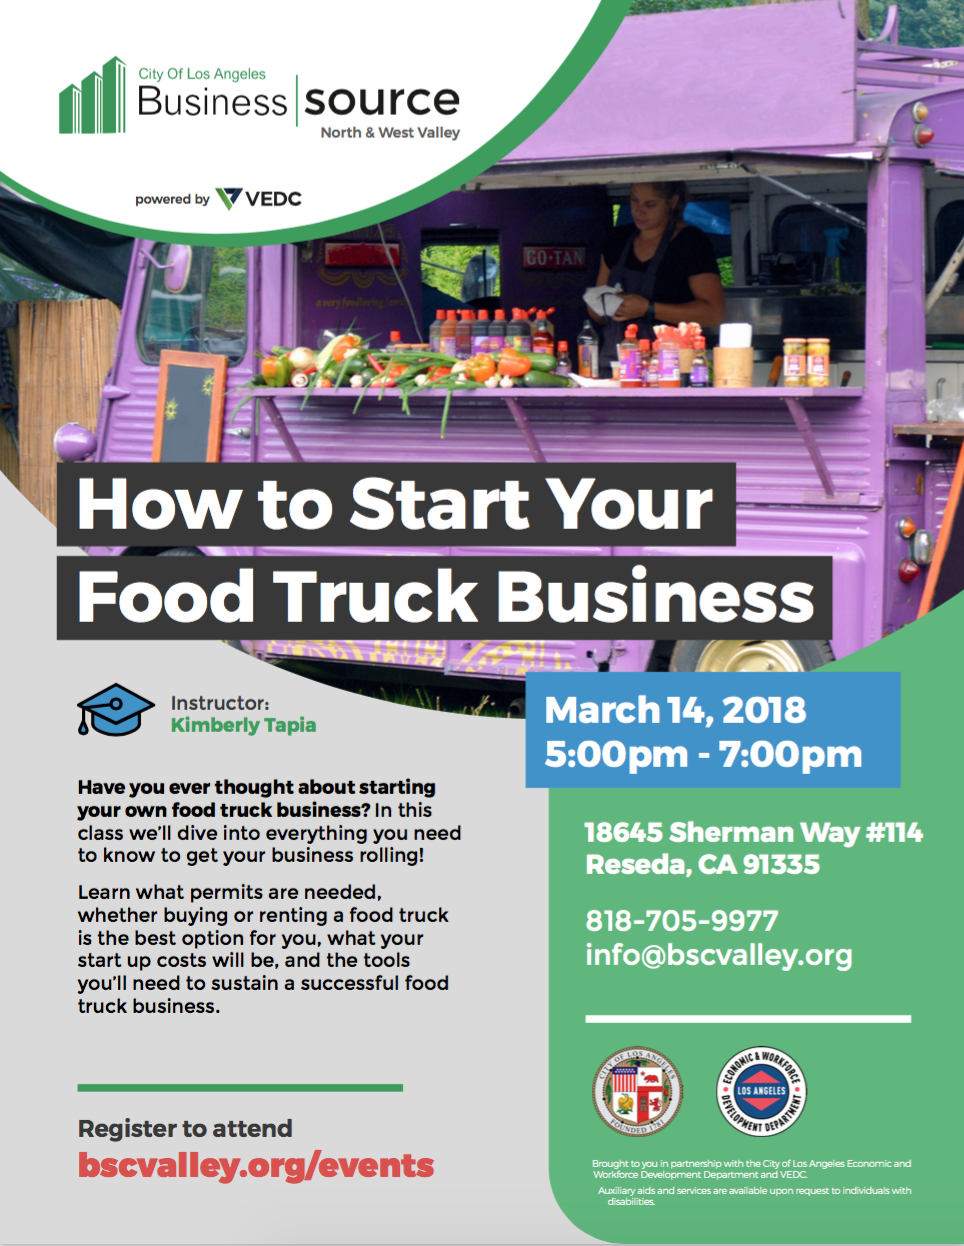 What I Need To Know About Food Truck Business